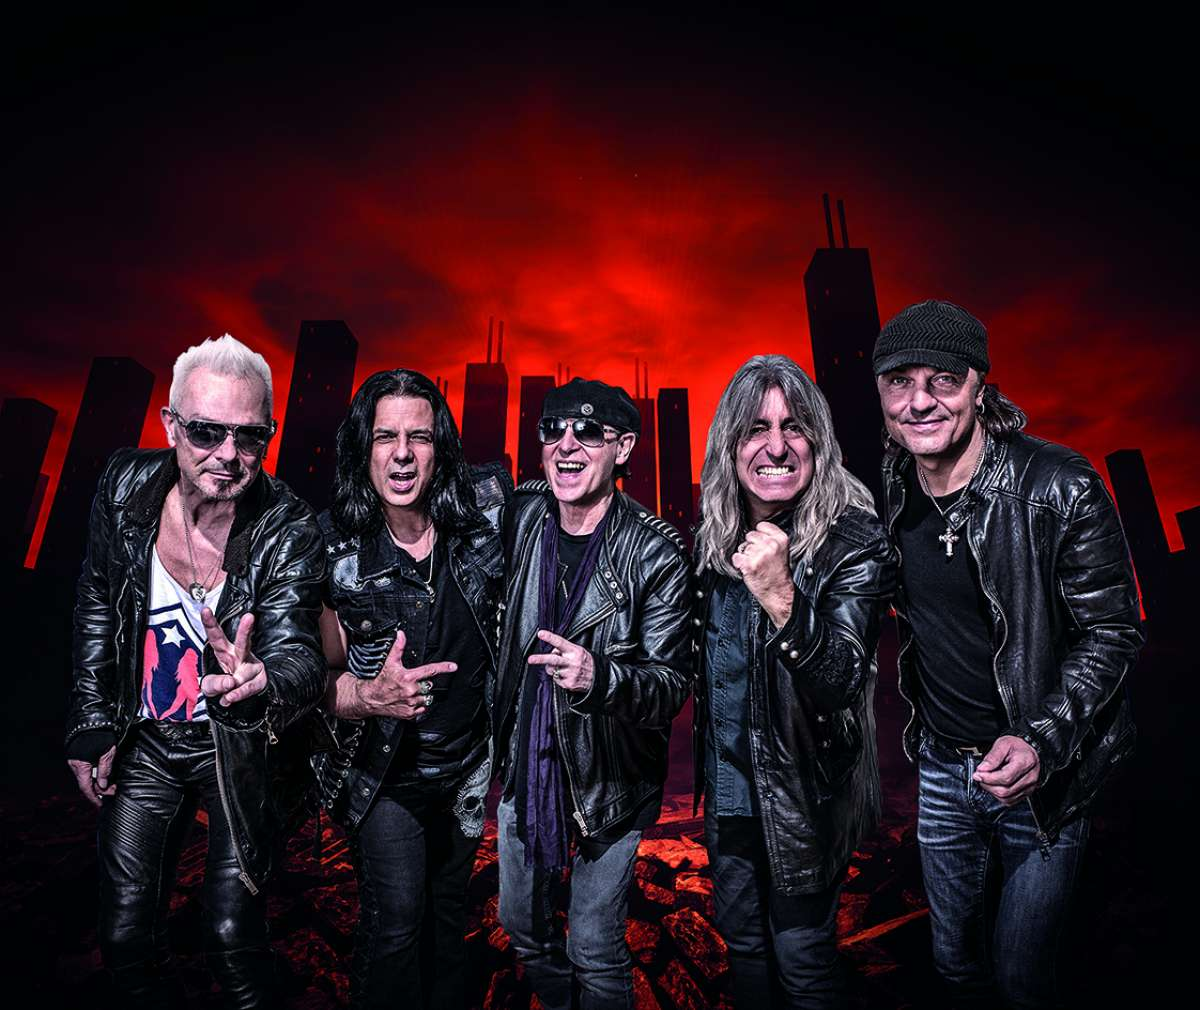 Crazy World Tour 2019 - Scorpions - Domplatz  - Fulda